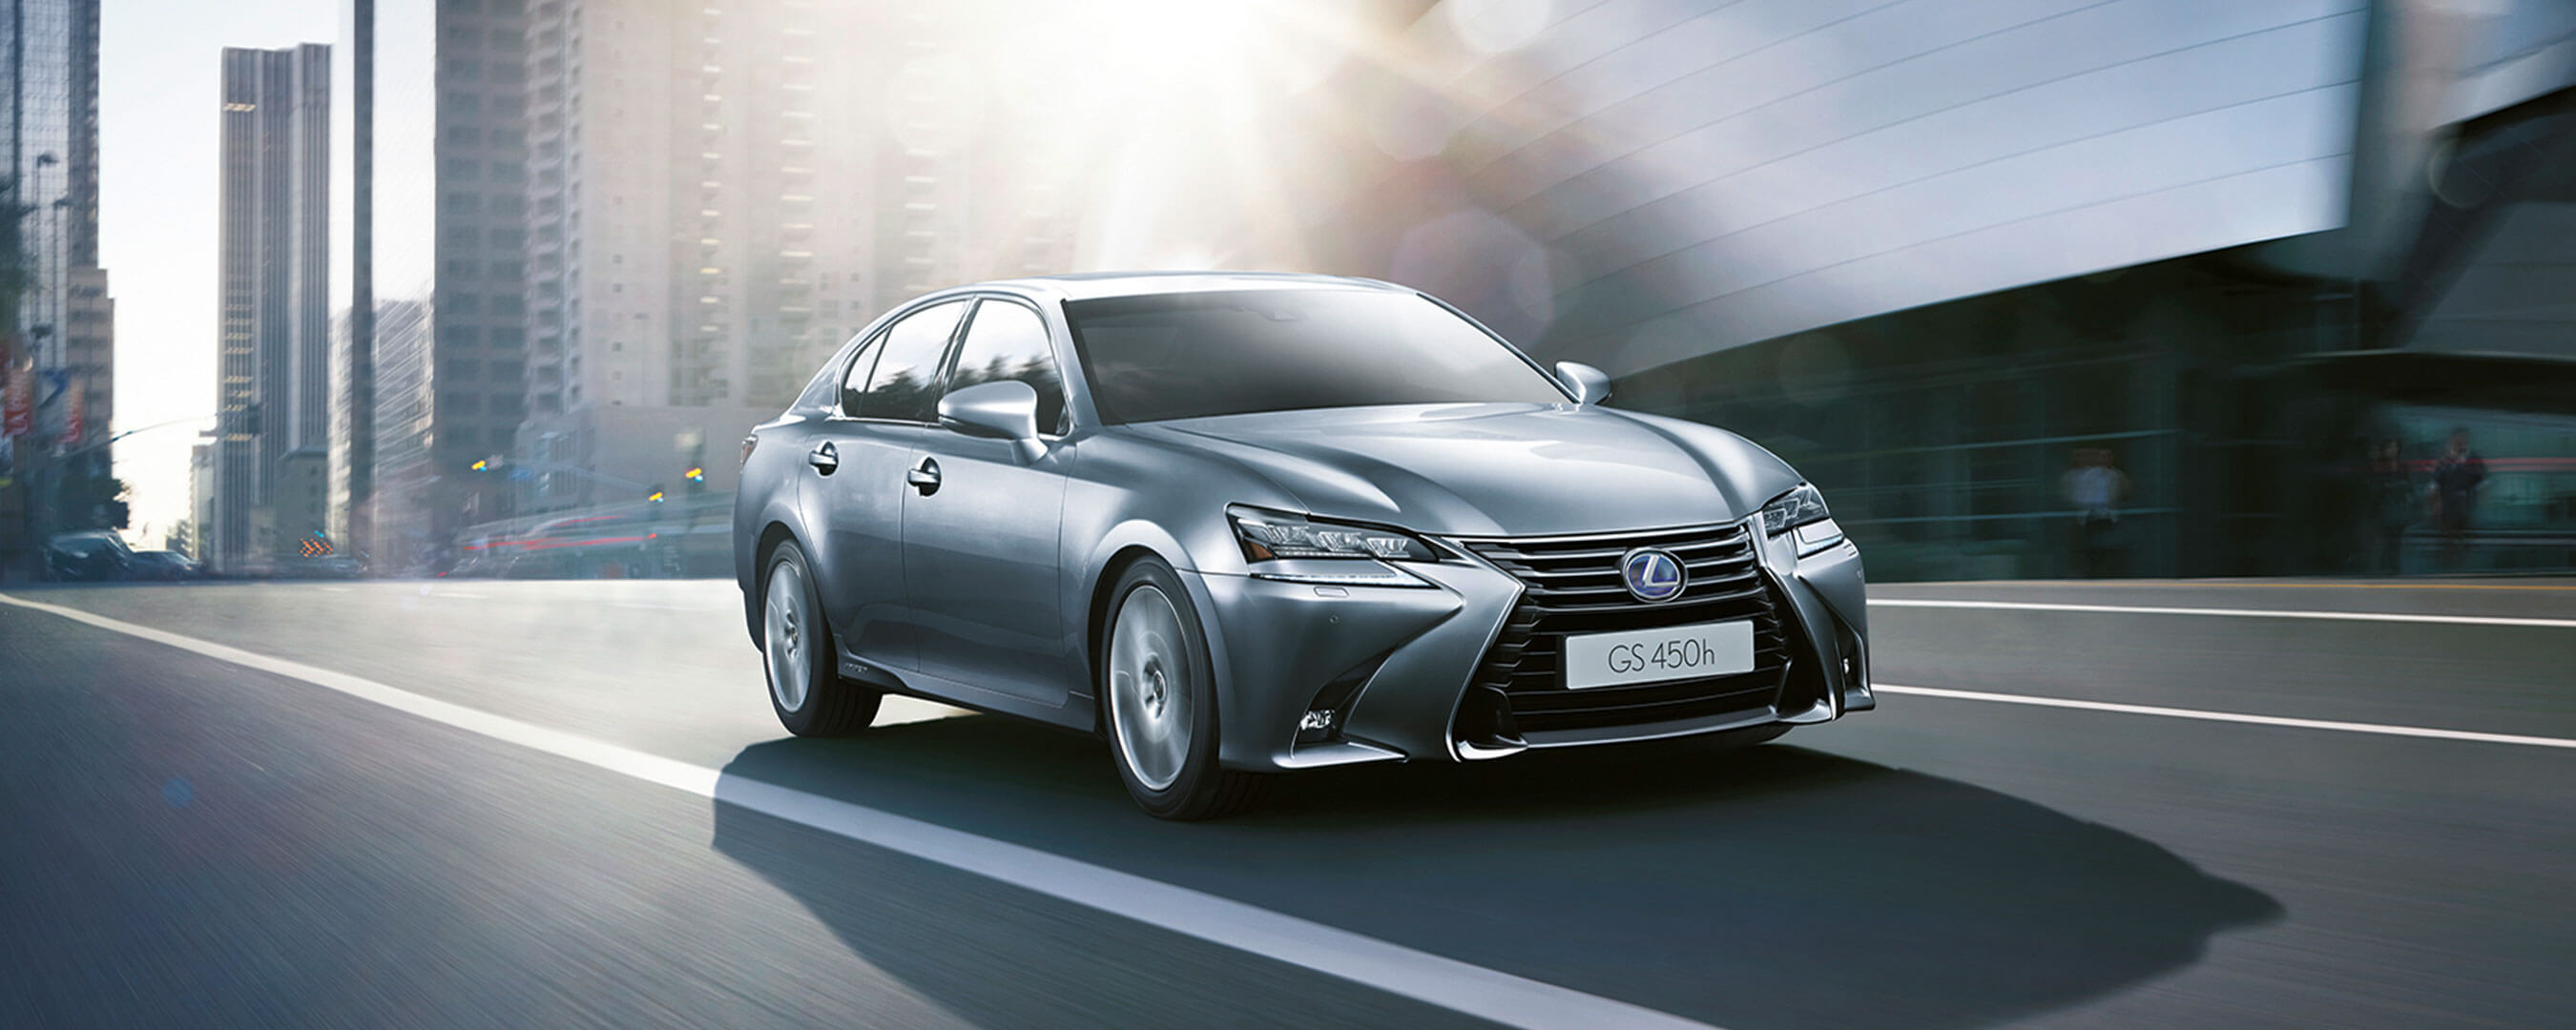 lexus gs luxury performance saloon lexus gs 300h models lexus uk. Black Bedroom Furniture Sets. Home Design Ideas